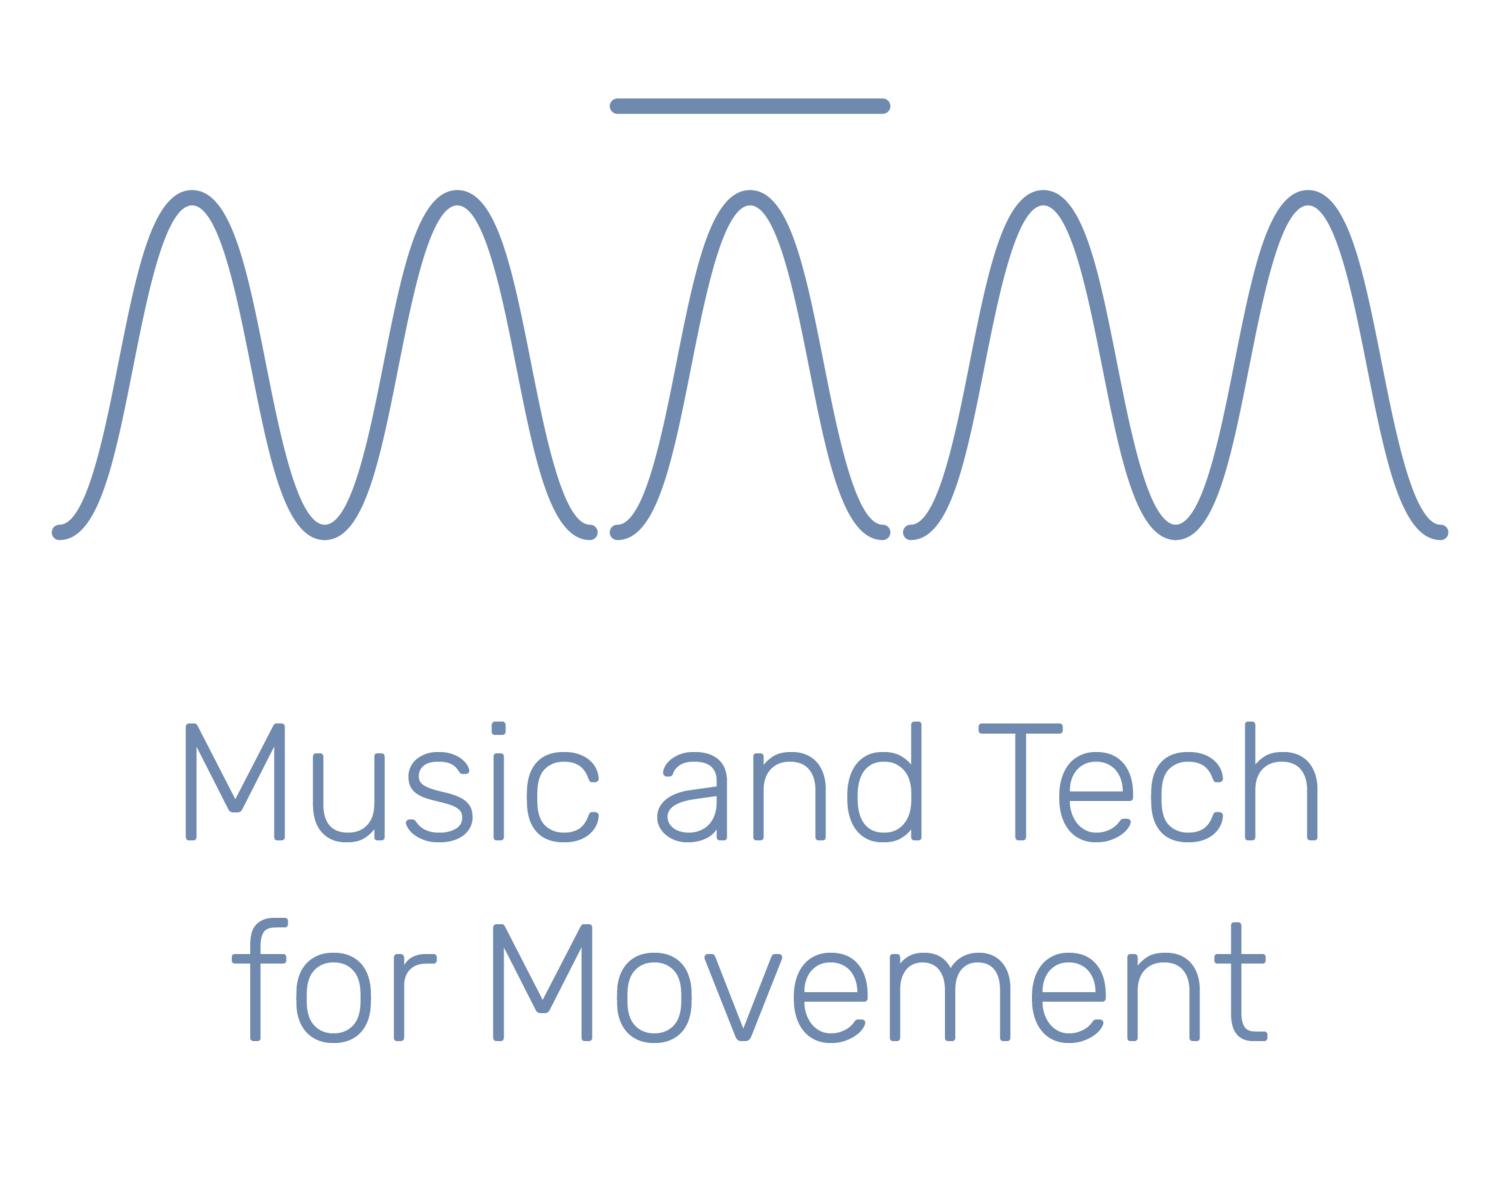 Music and Tech for Movement